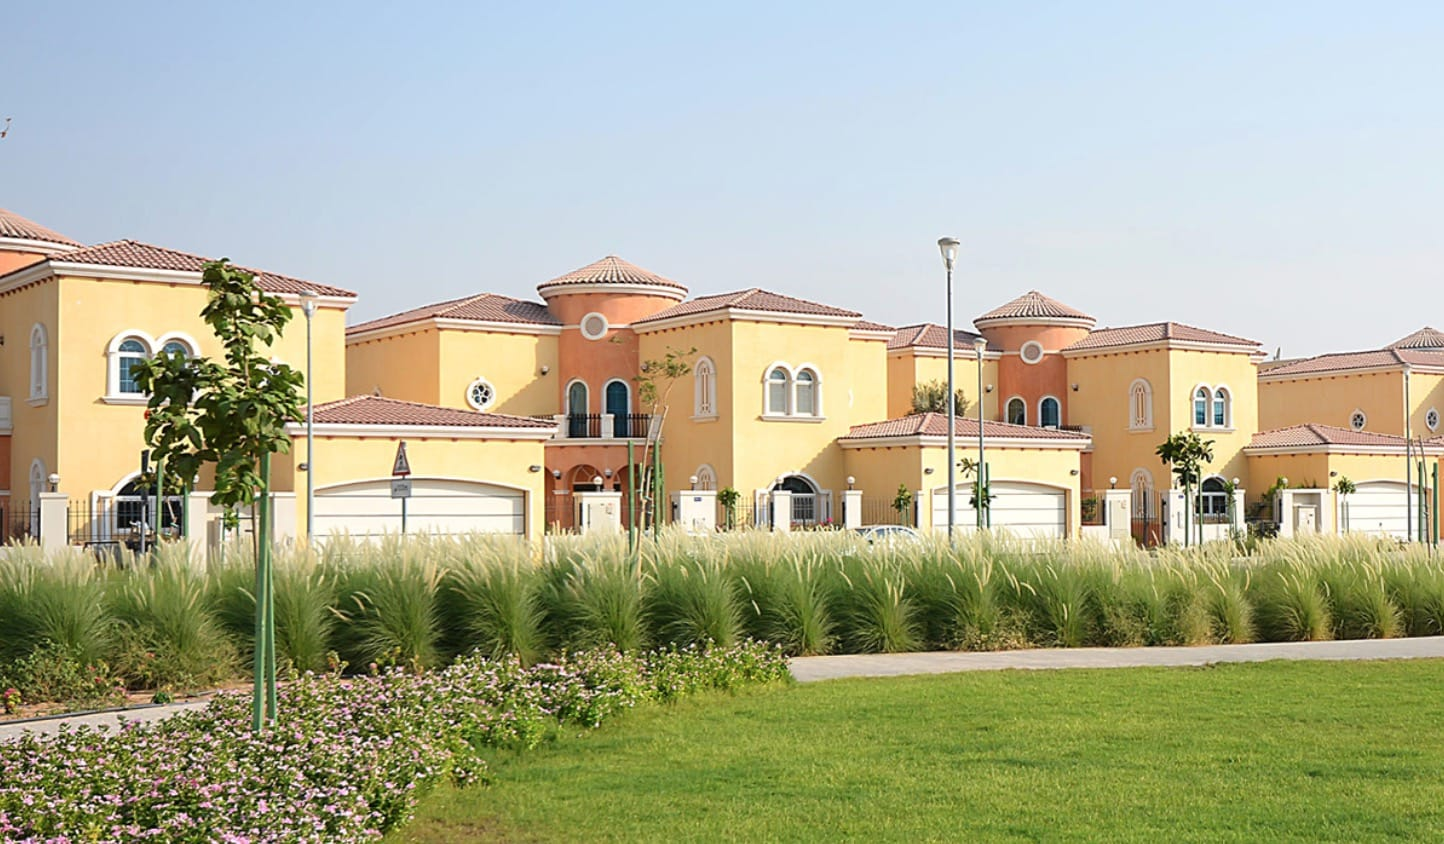 Villas for Sale and Rent in Jumeirah Park Dubai